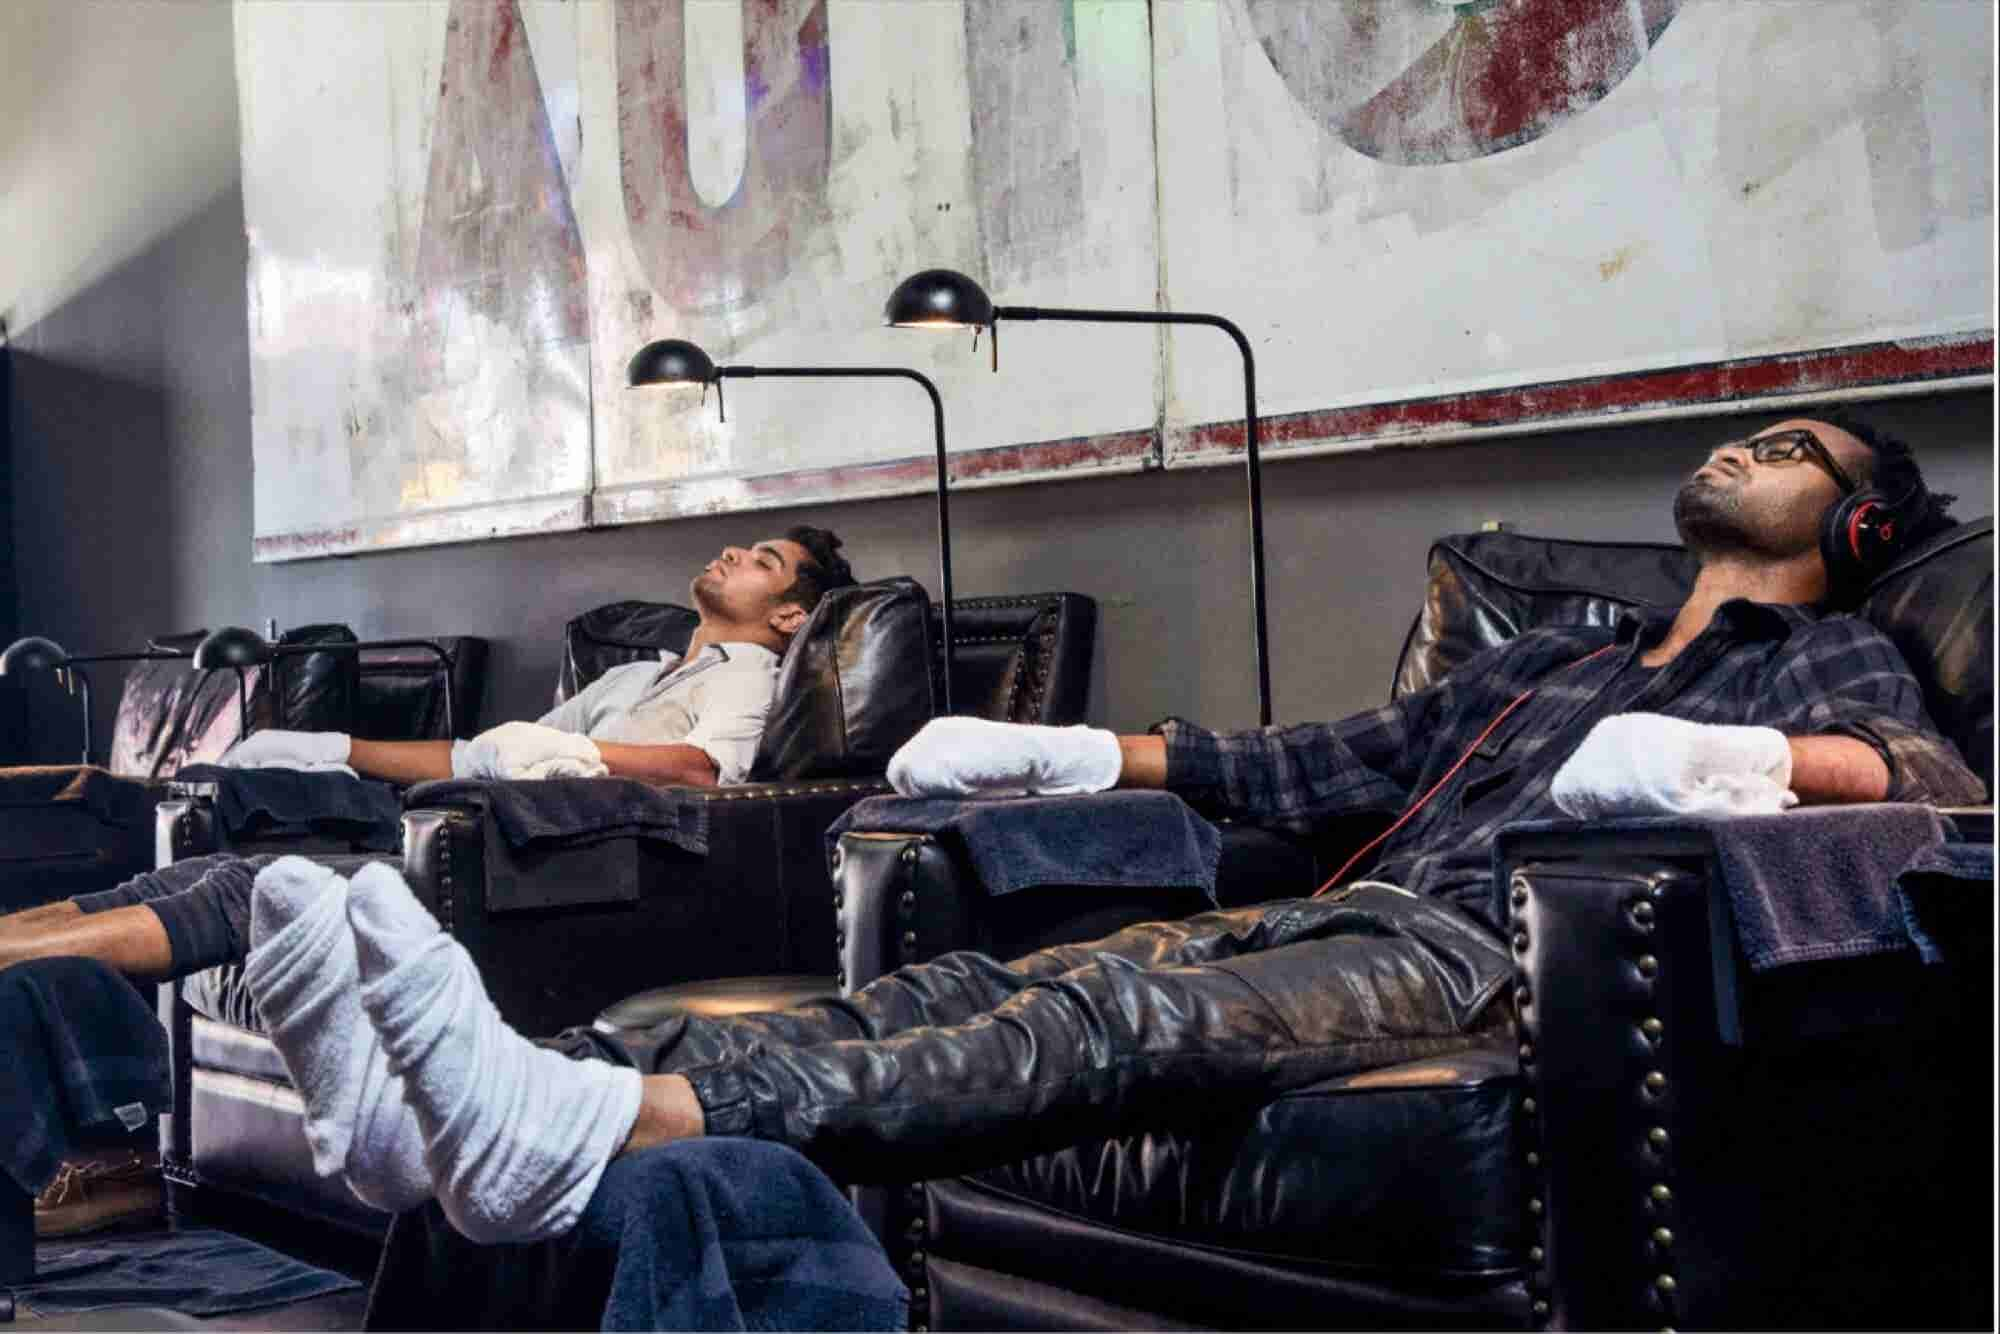 Meet the Franchisor Offering Manly Pedicures